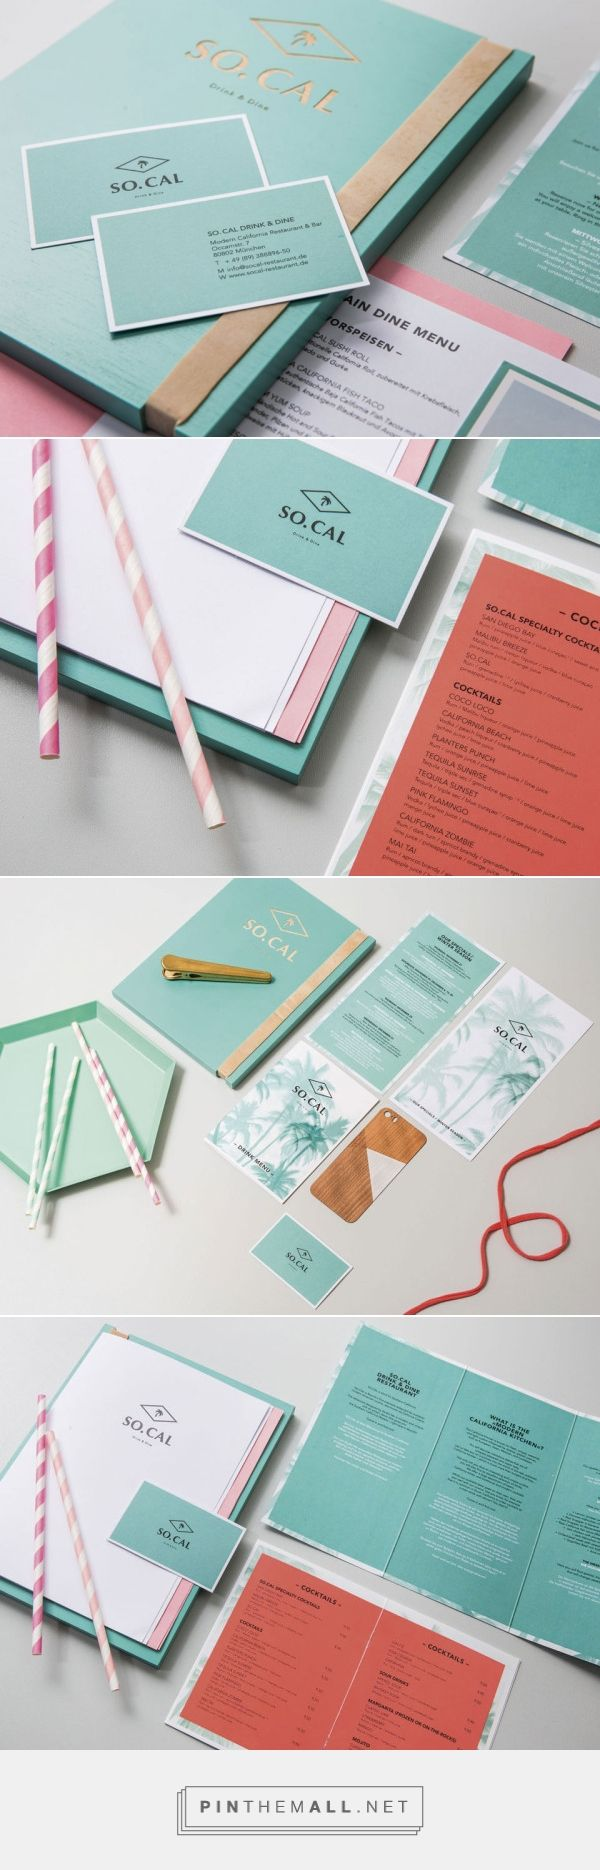 So.Cal – Drink & Dine.  A preppy restaurant design and #stationery suite